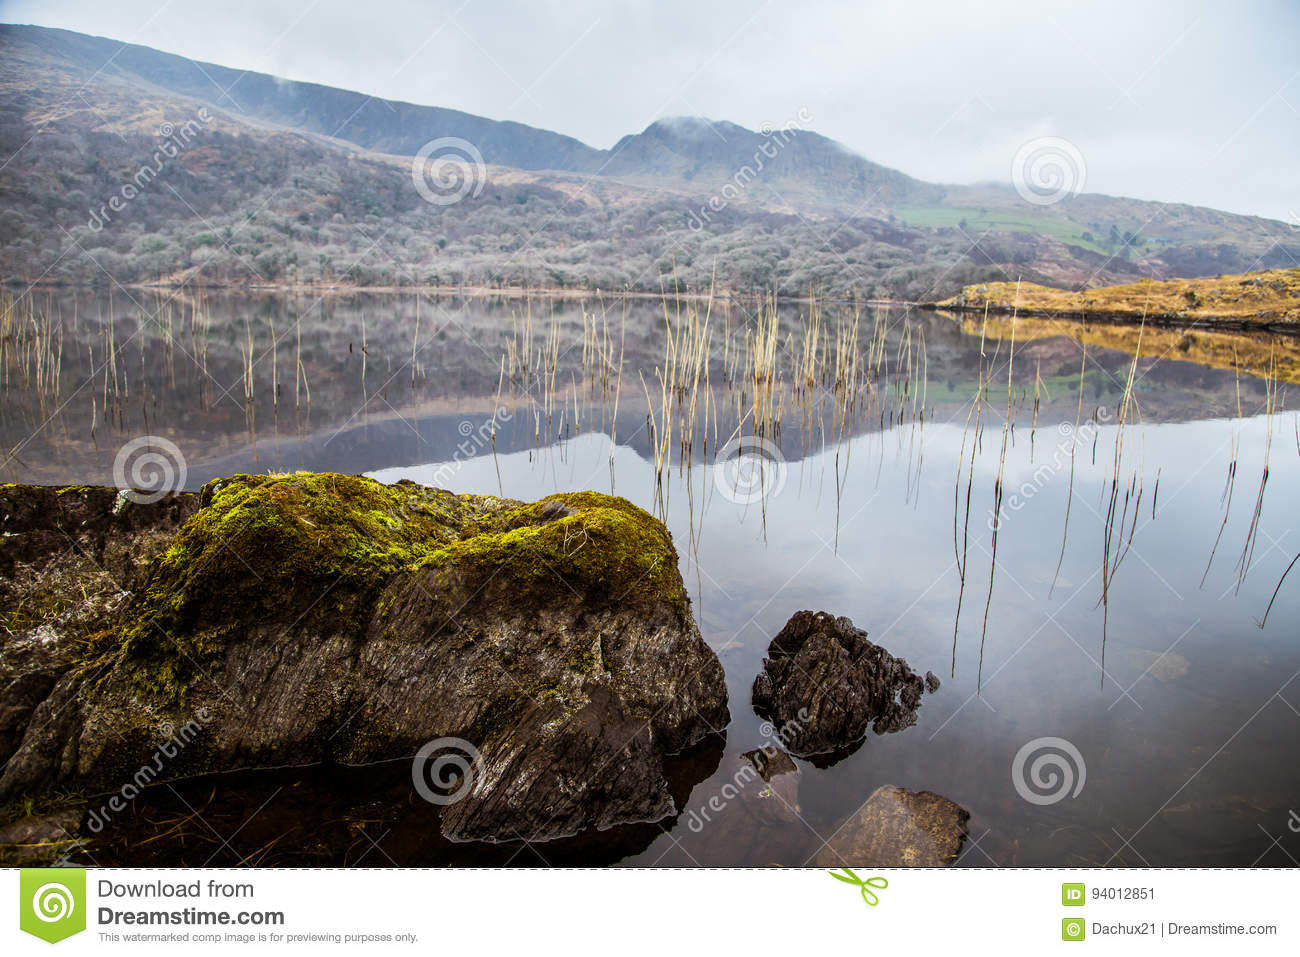 A beautiful irish mountain landscape with a lake in spring.